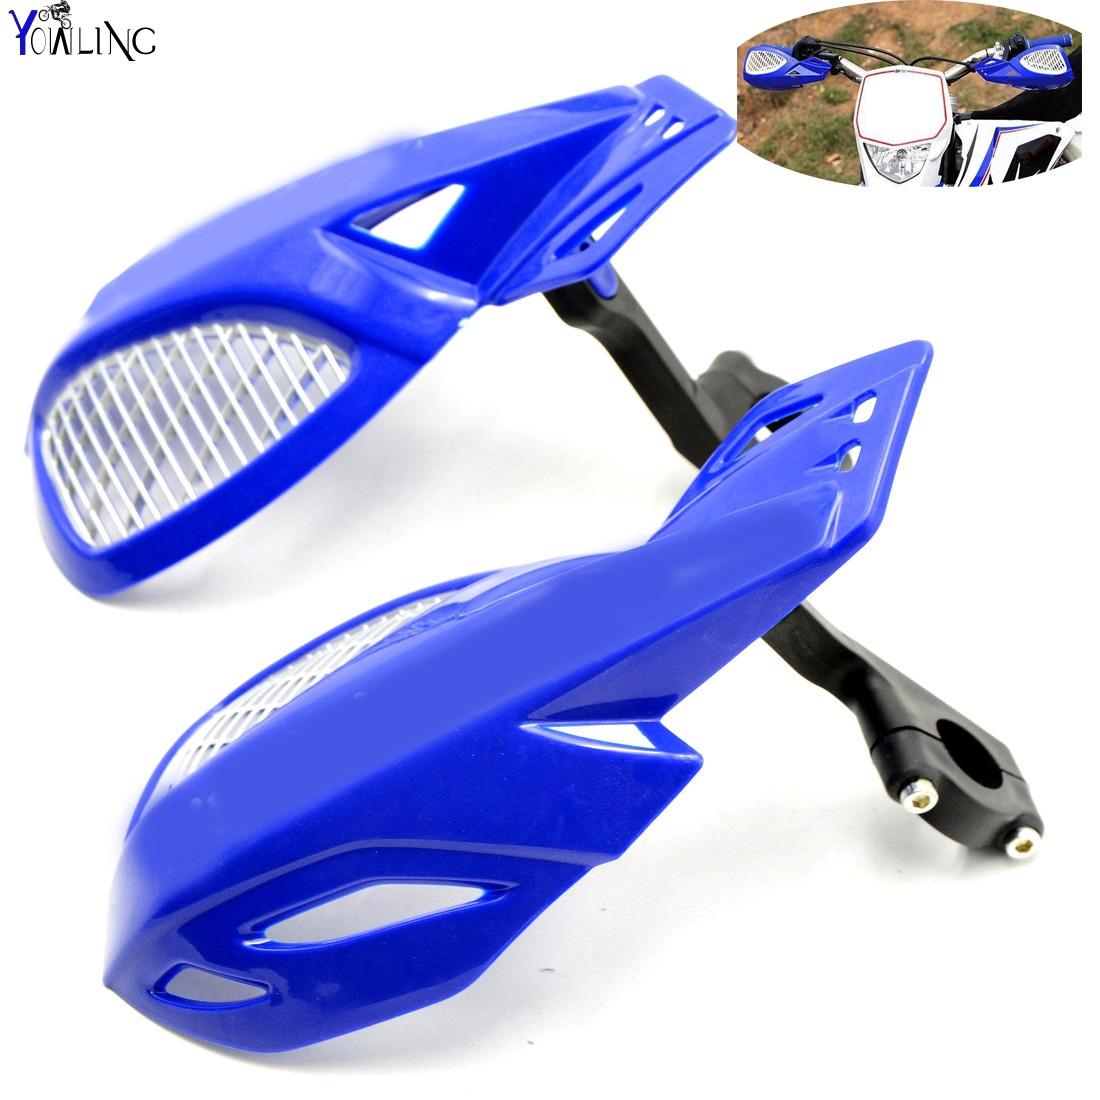 Dirt bike Motorcycle 7/8''22mm handlebar brake hand guard For YAMAHA YZ250X YZ426F YZ450F YZ450FX YZ80 YZ85 dirt bike motorcycle 7 8 22mm handlebar brake hand guard for yamaha yz250x yz426f yz450f yz450fx yz80 yz85